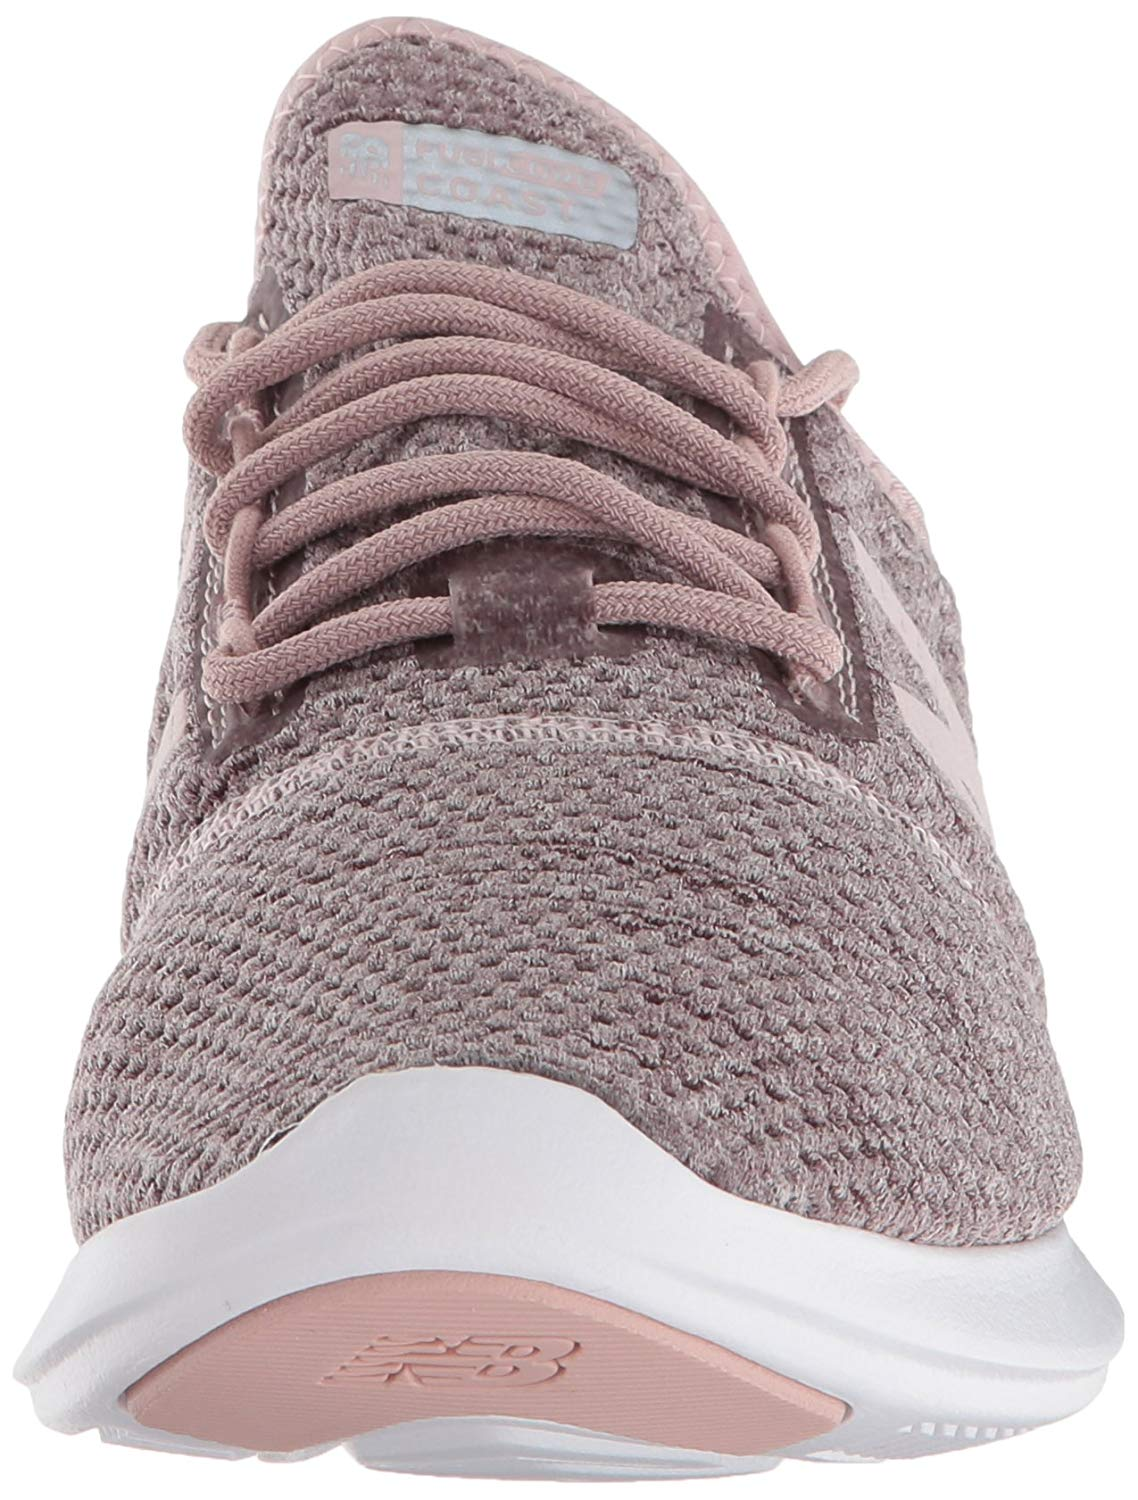 New-Balance-Womens-wcstlrb4-Coast-V4-Low-Top-Lace-Up-Running-Sneaker thumbnail 13